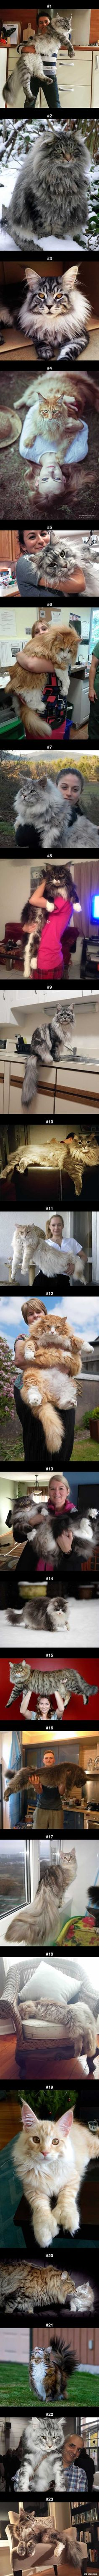 23 Maine Coon Cats That Will Make Your Cat Look Tiny